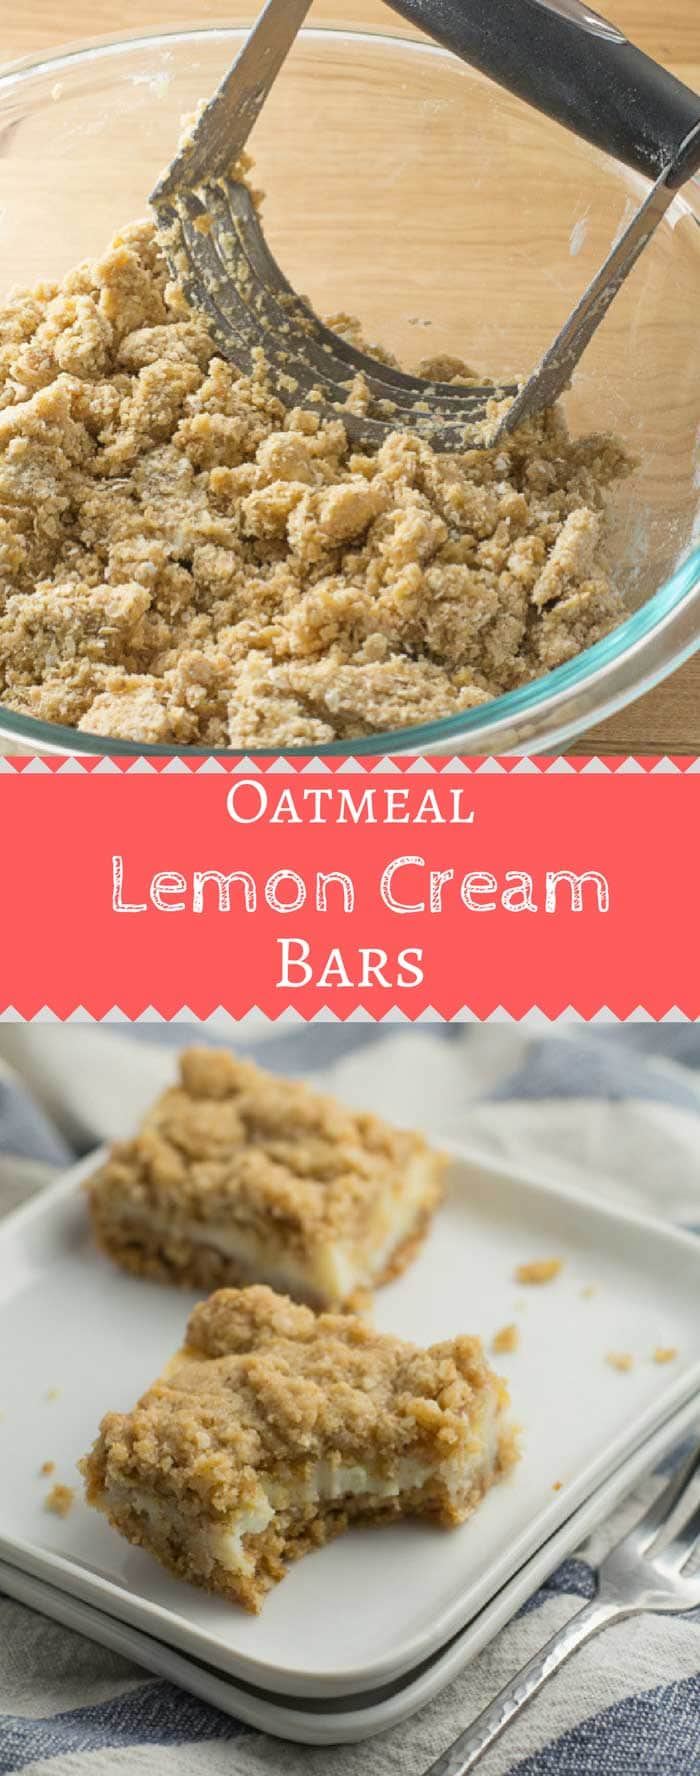 These Oatmeal Lemon Cream Bars are perfect for the lemon lover. No mixer needed and it comes together in under an hour! #lemonbars #lemonbakes #summerbaking | bakedujour.com